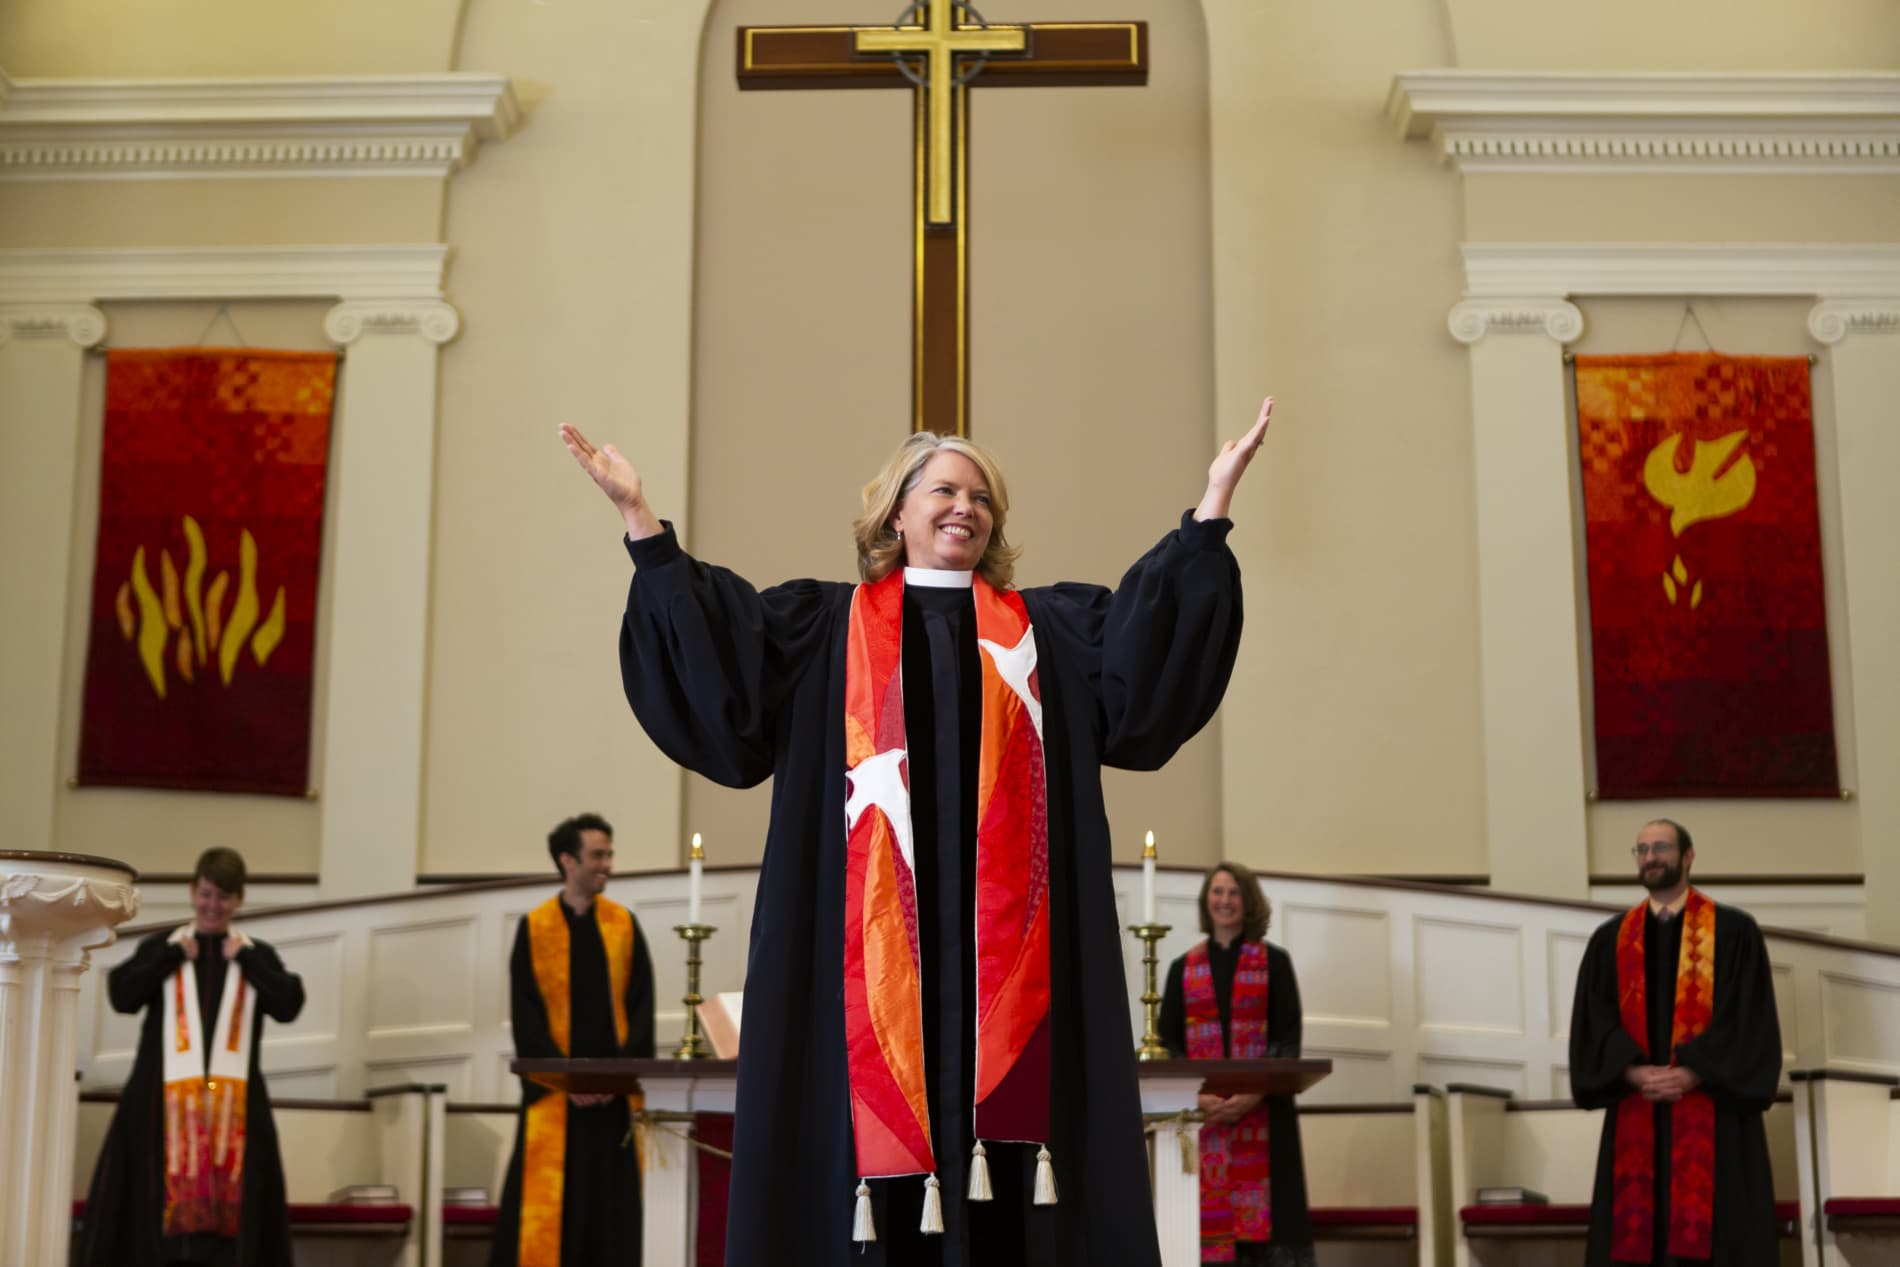 Rev. Sarah Butter lifts her hands to exhort the congregation in worship